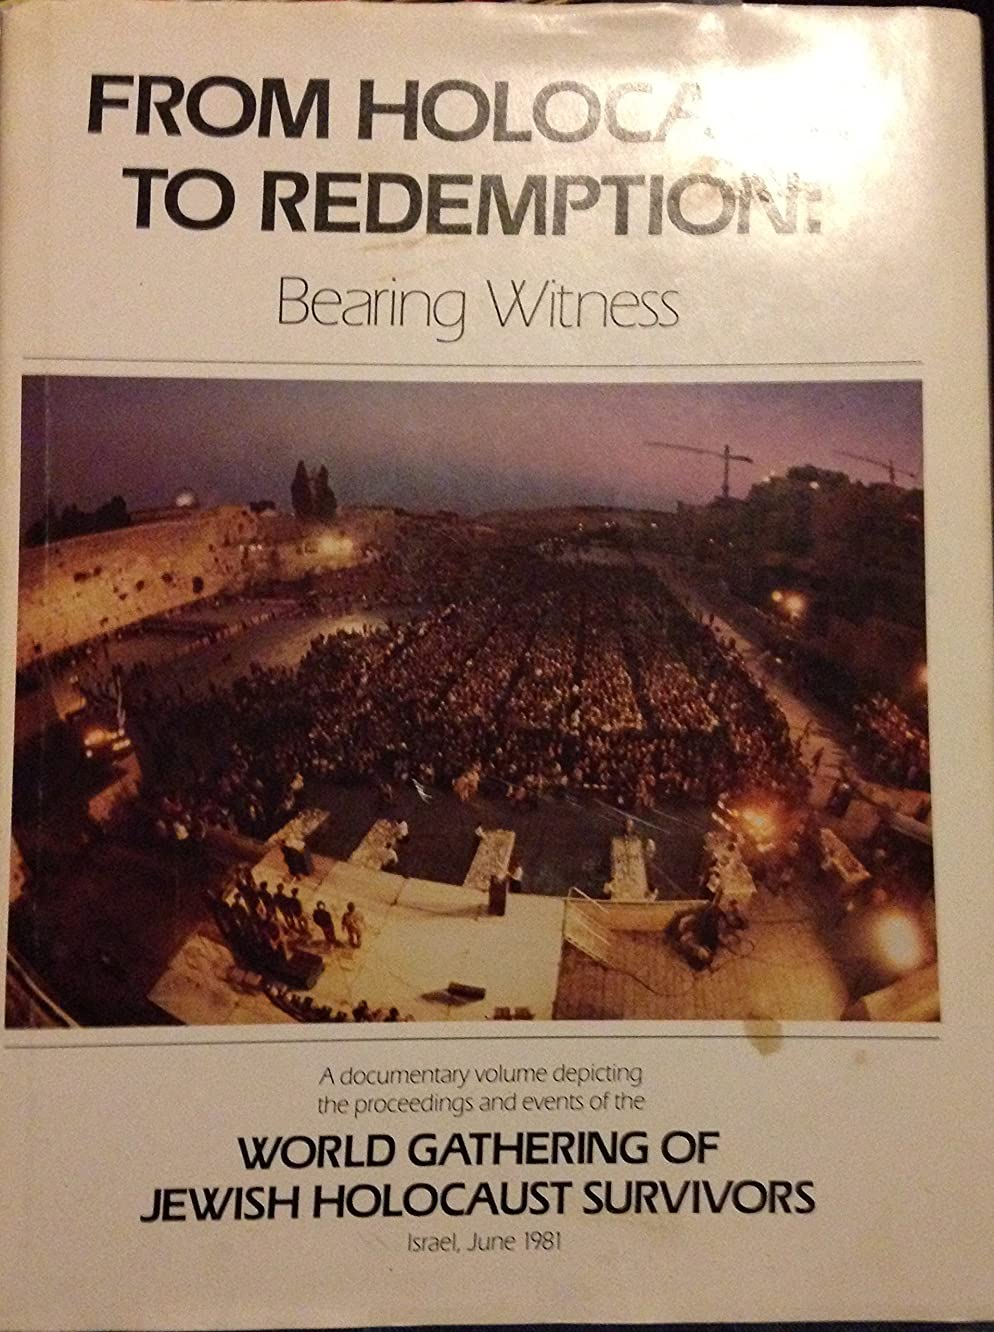 From Holocaust to Redemption Bearing Witness A Documentary Volume depicting the proceedings and Events of the World Gatheing of Jewish Holocaust Survivors Israel June 1981